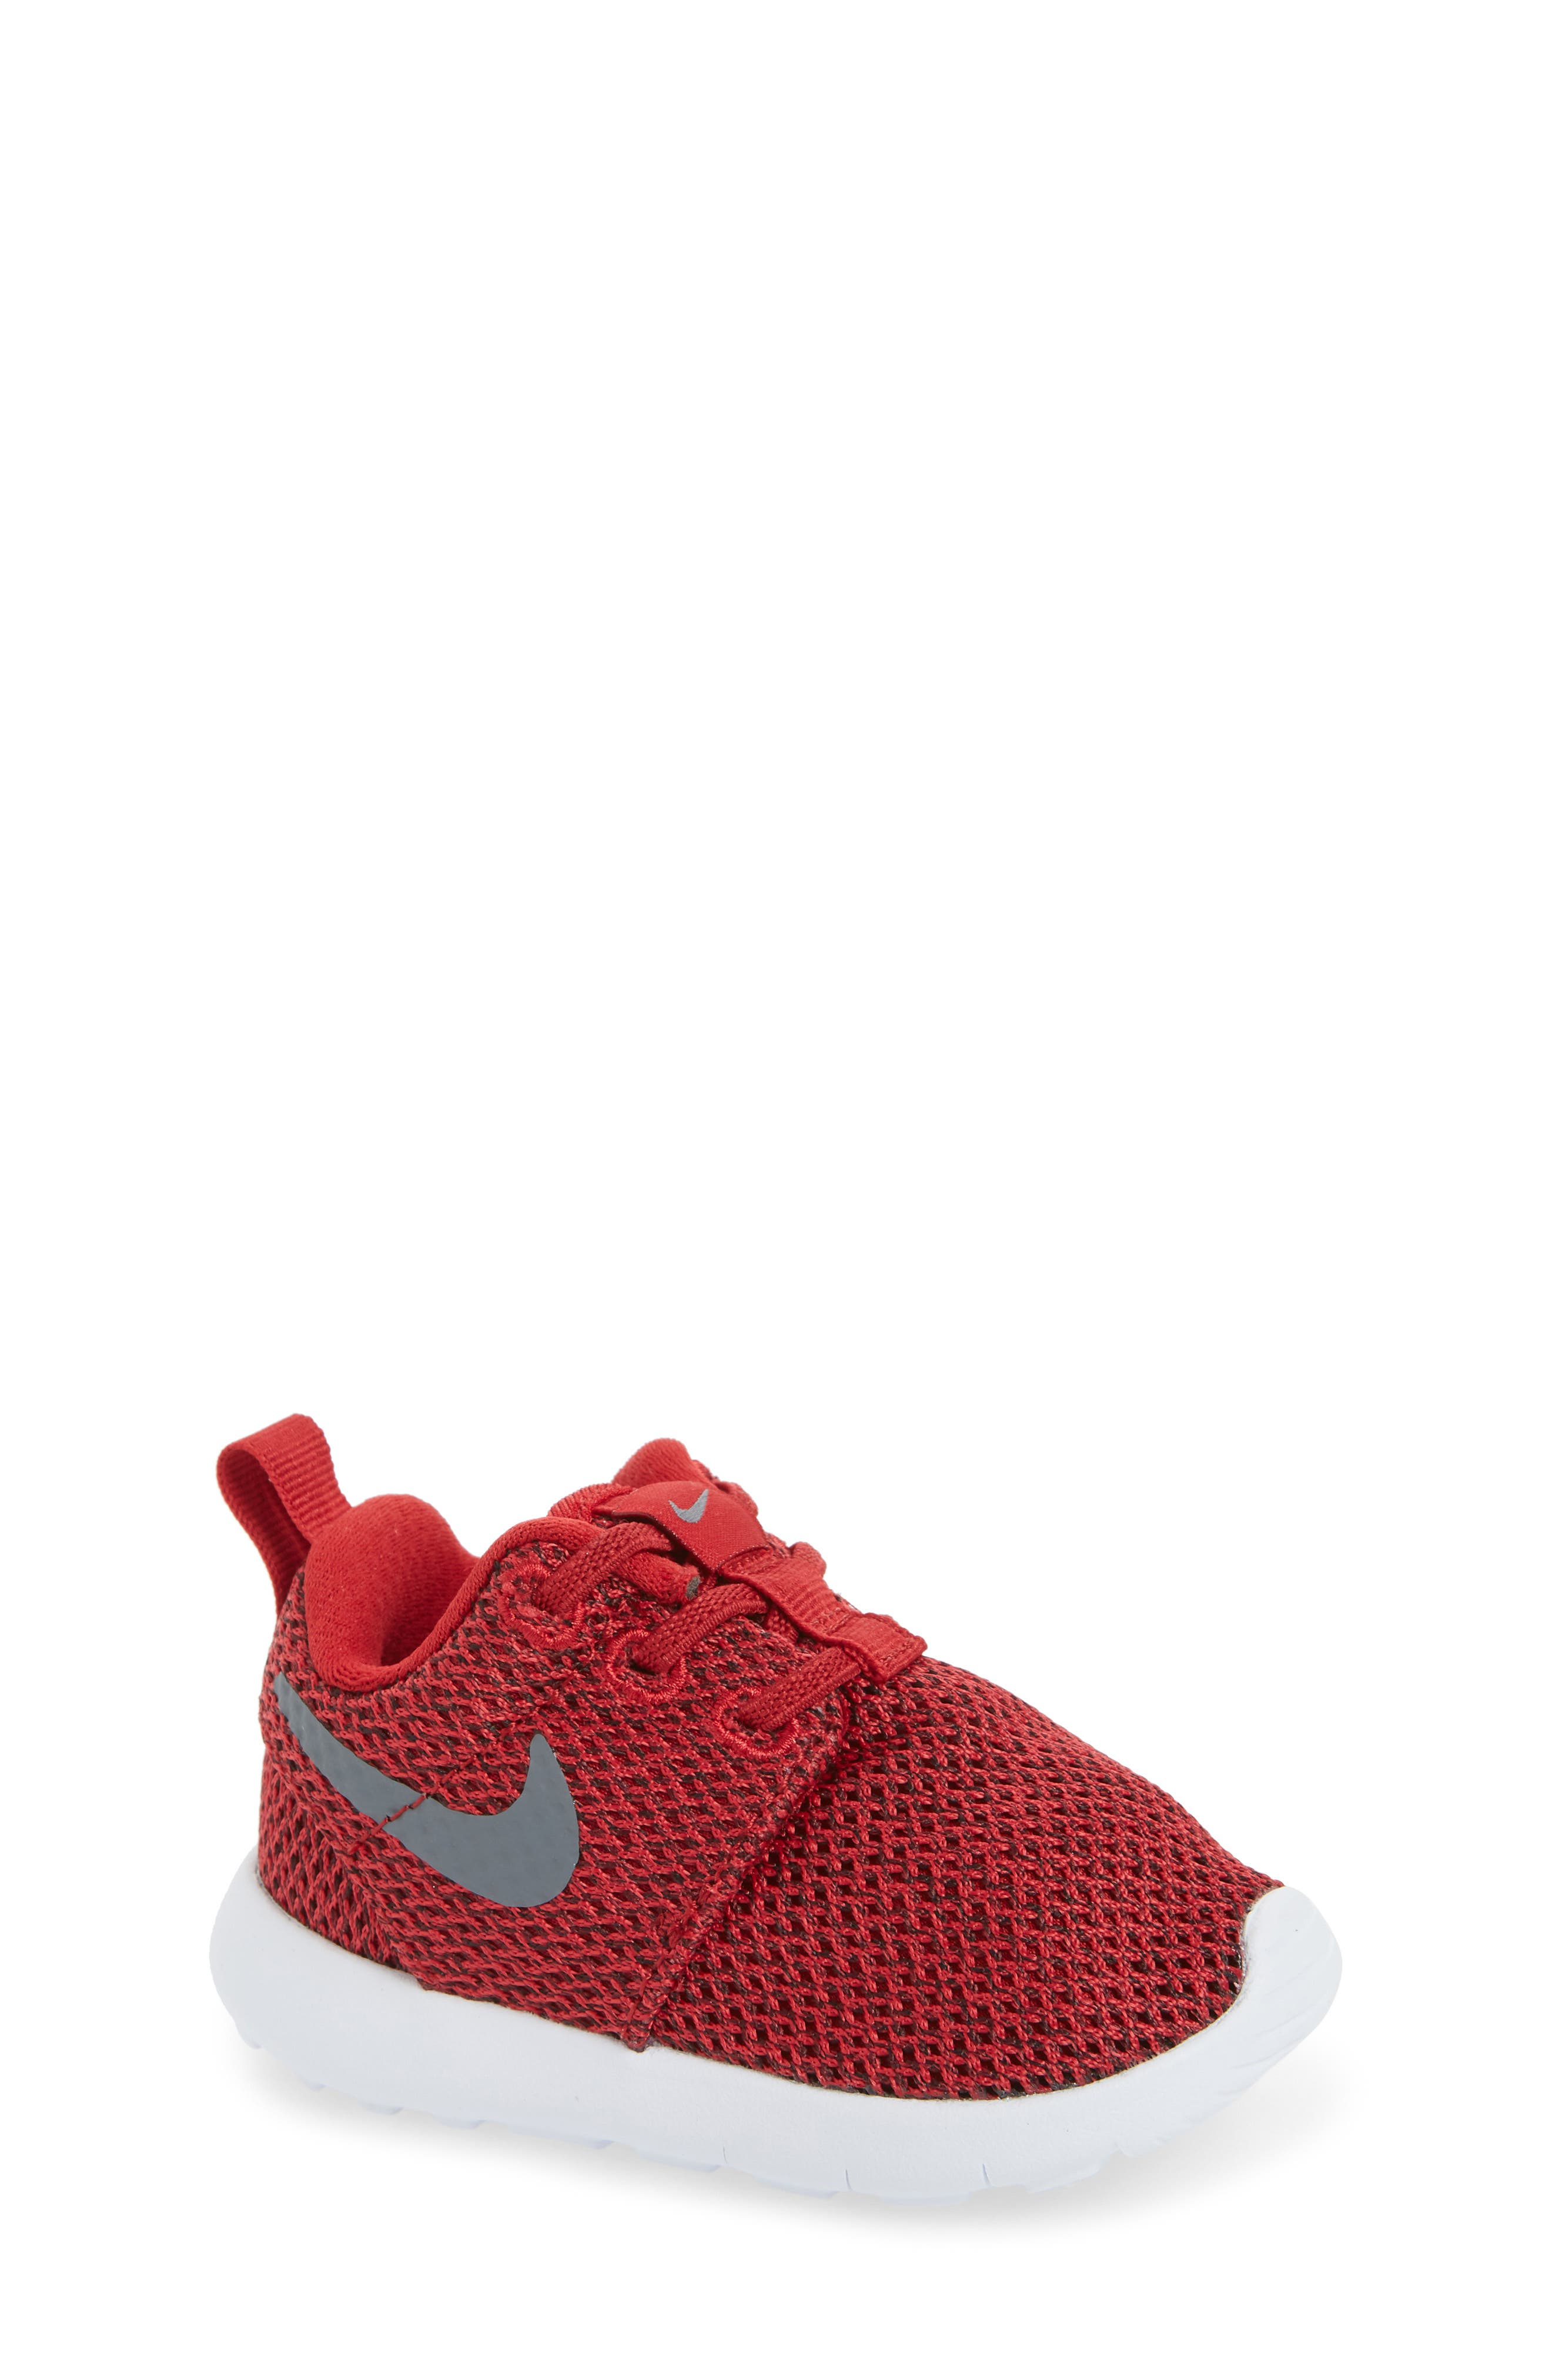 'Roshe Run' Sneaker,                         Main,                         color, Gym Red/ Cool Grey/ Anthracite